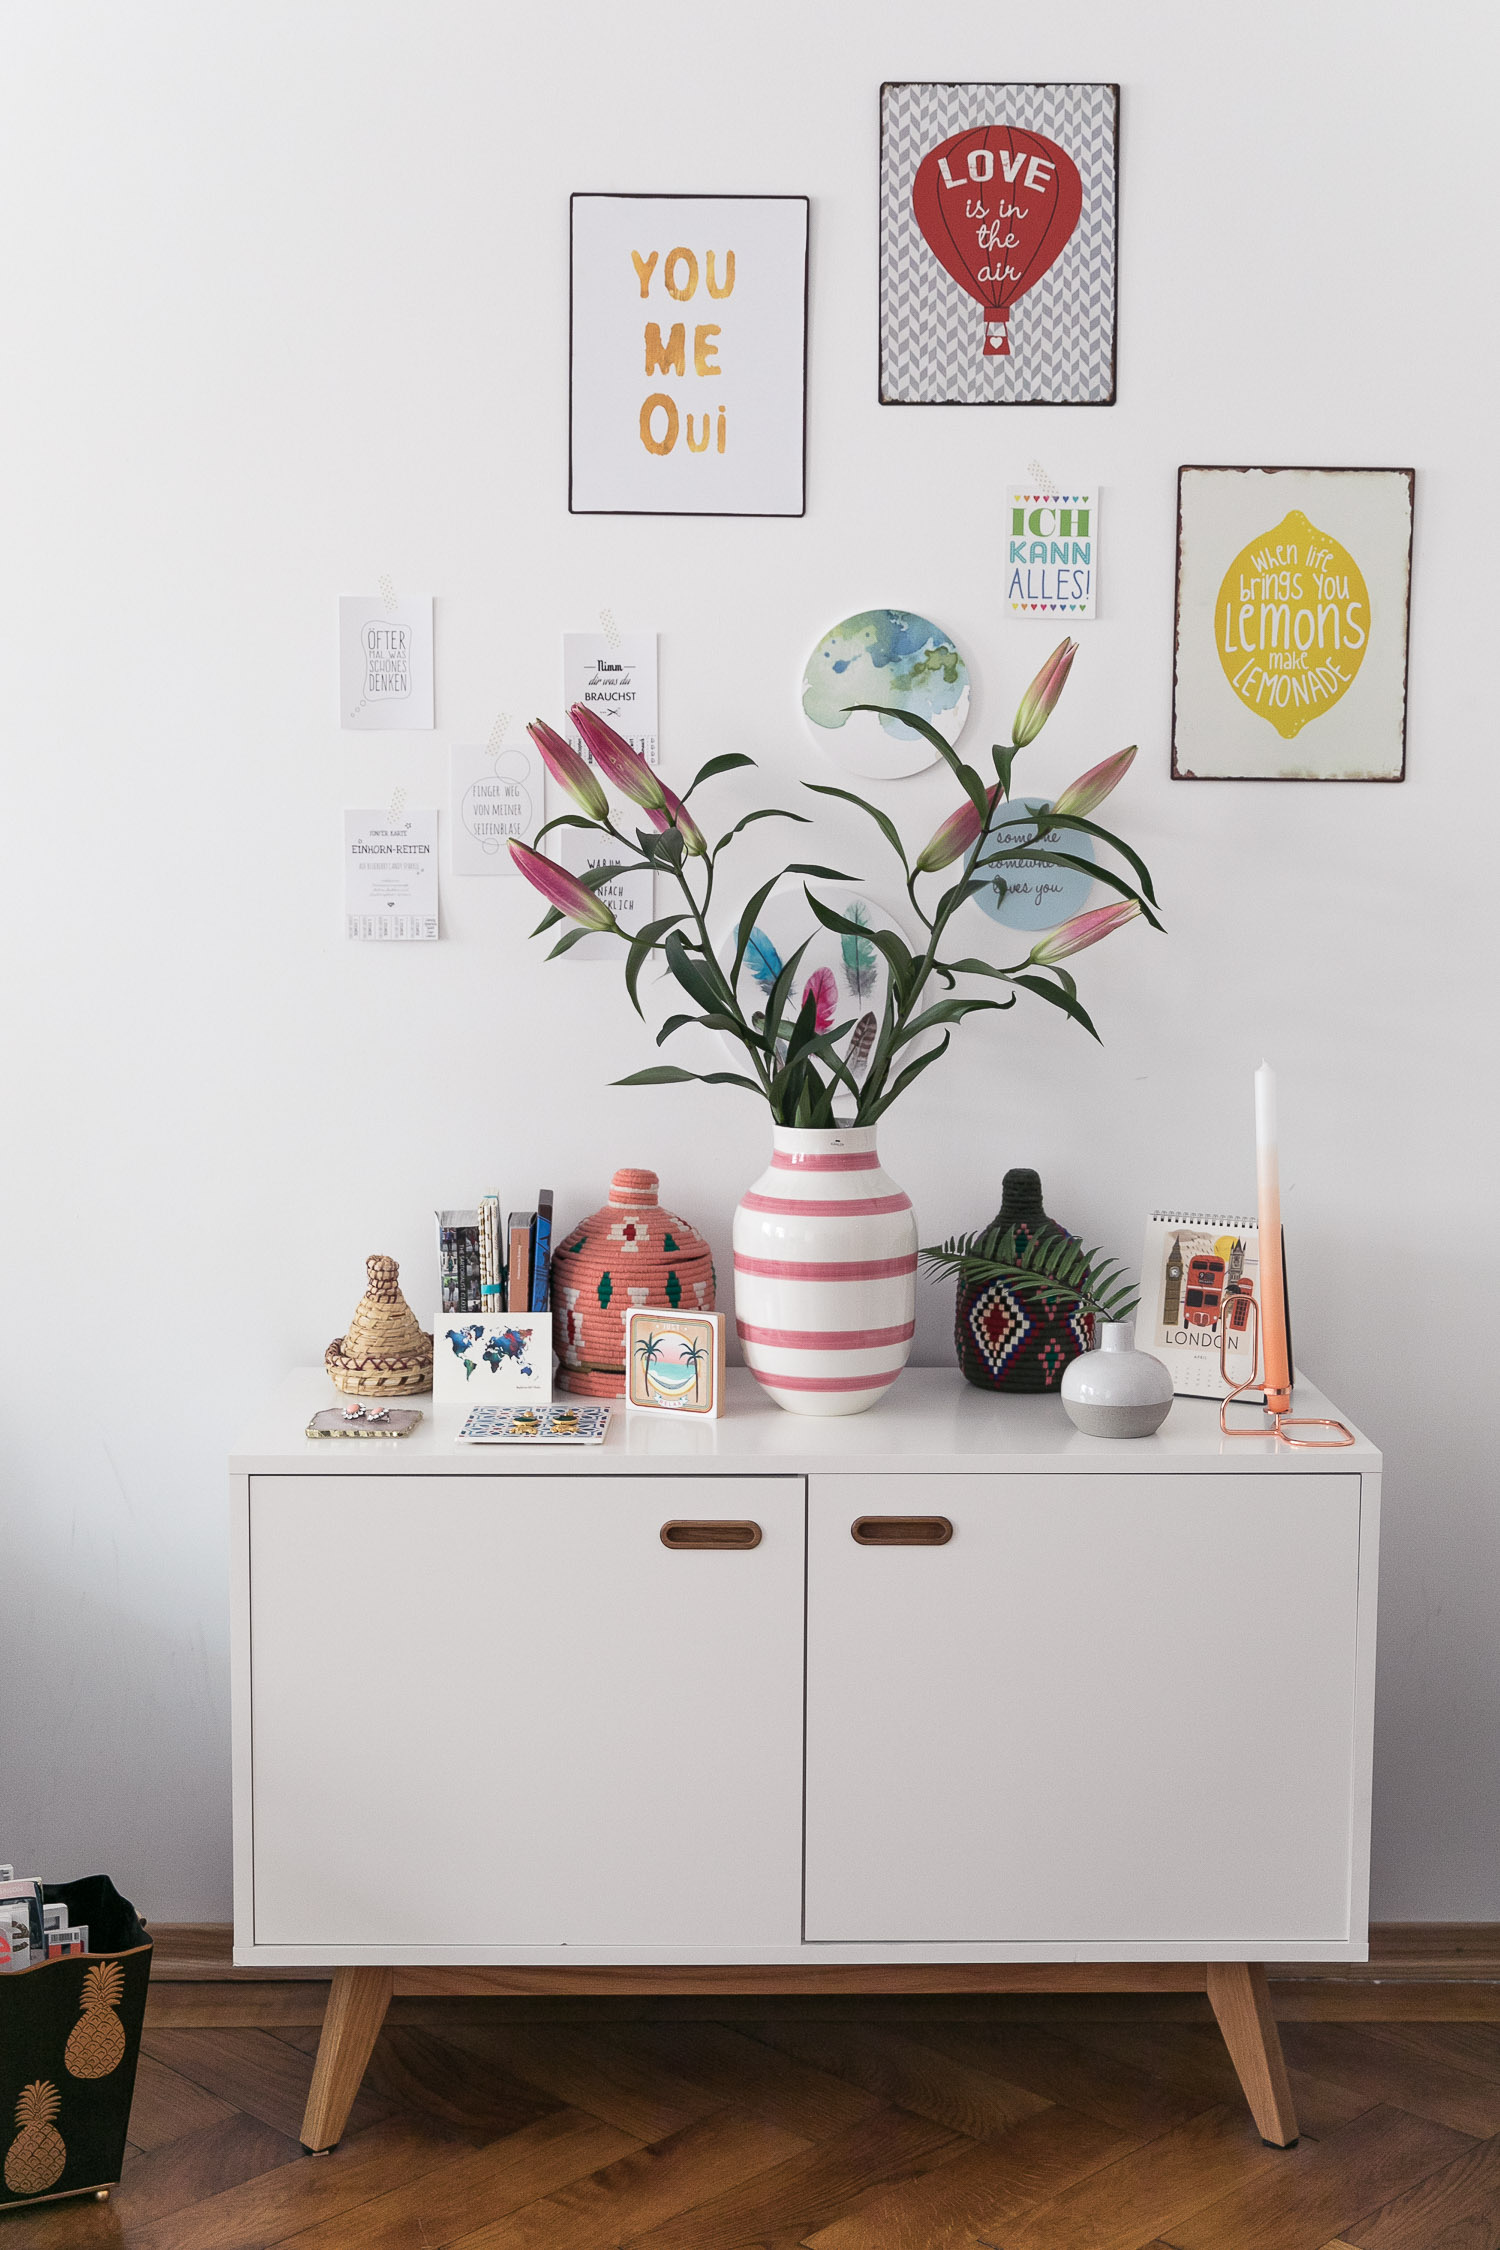 Sideboard Dekoration Styling Blumen Vase Josie Loves